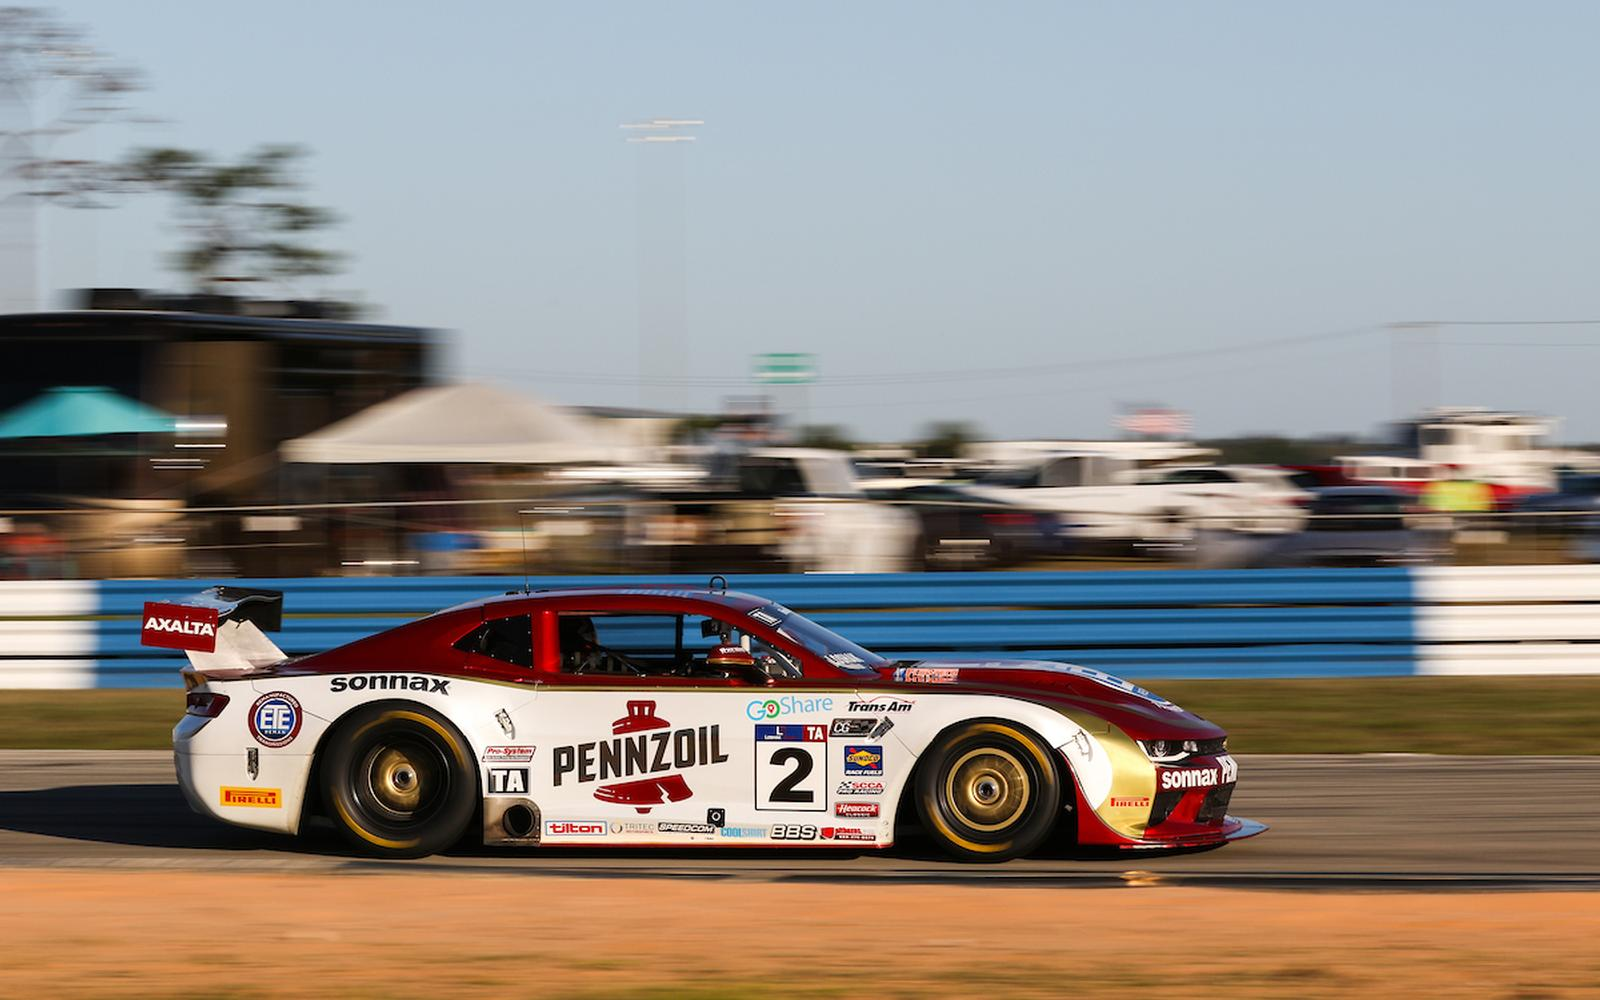 Home Track Road Atlanta Up Next for Burtin Racing and Loshak